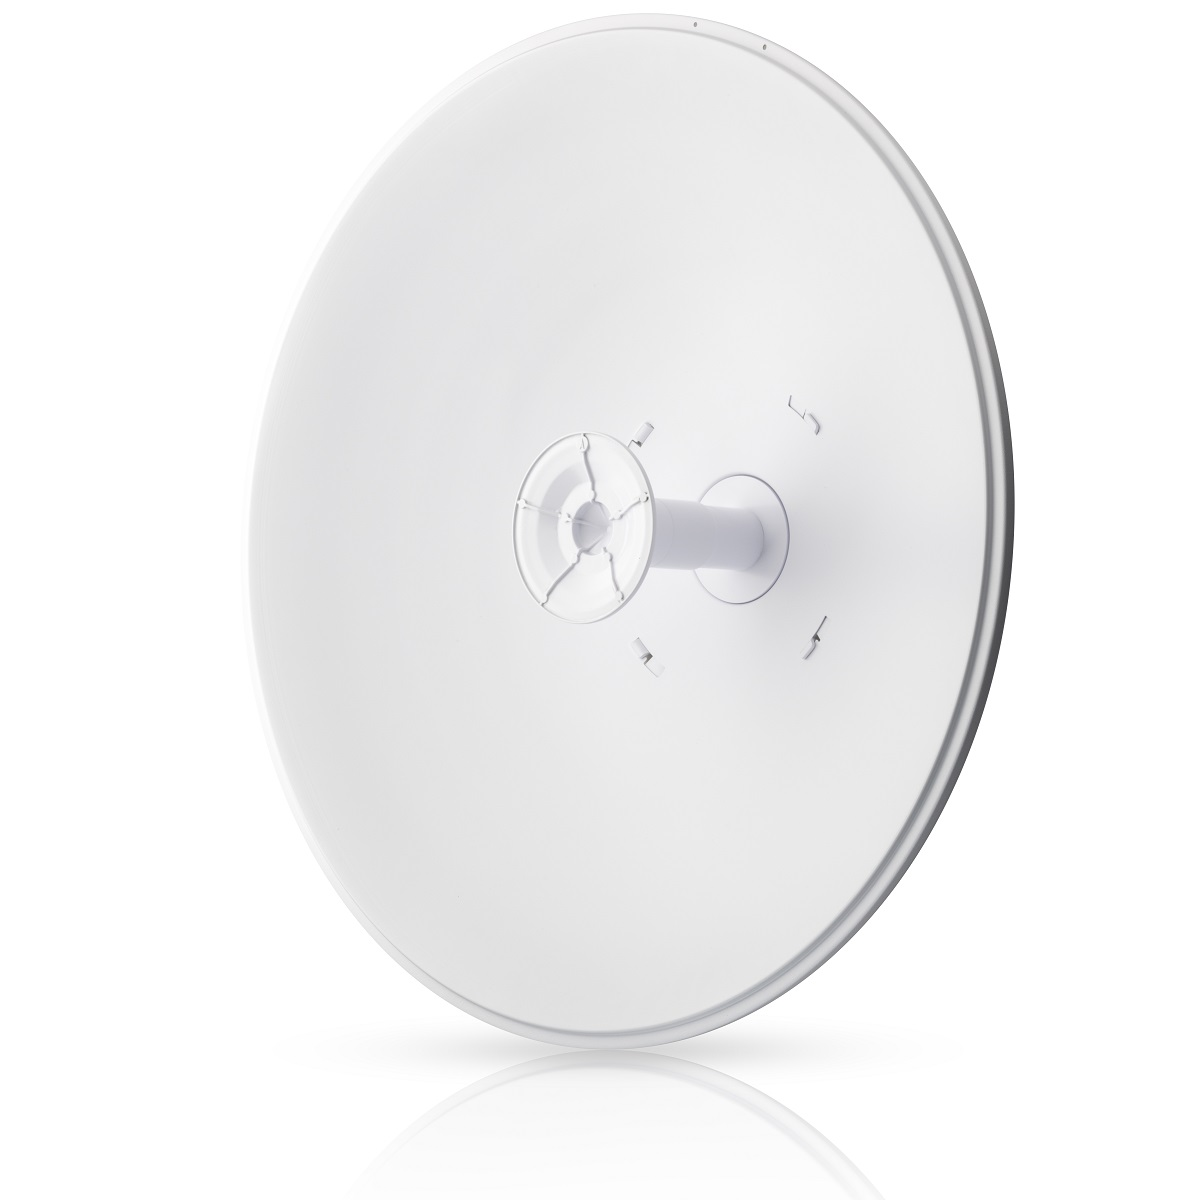 Ubiquiti 5GHz airFiber Dish 30dBi Slant 45 degree signal angle for optimum interference avoidance